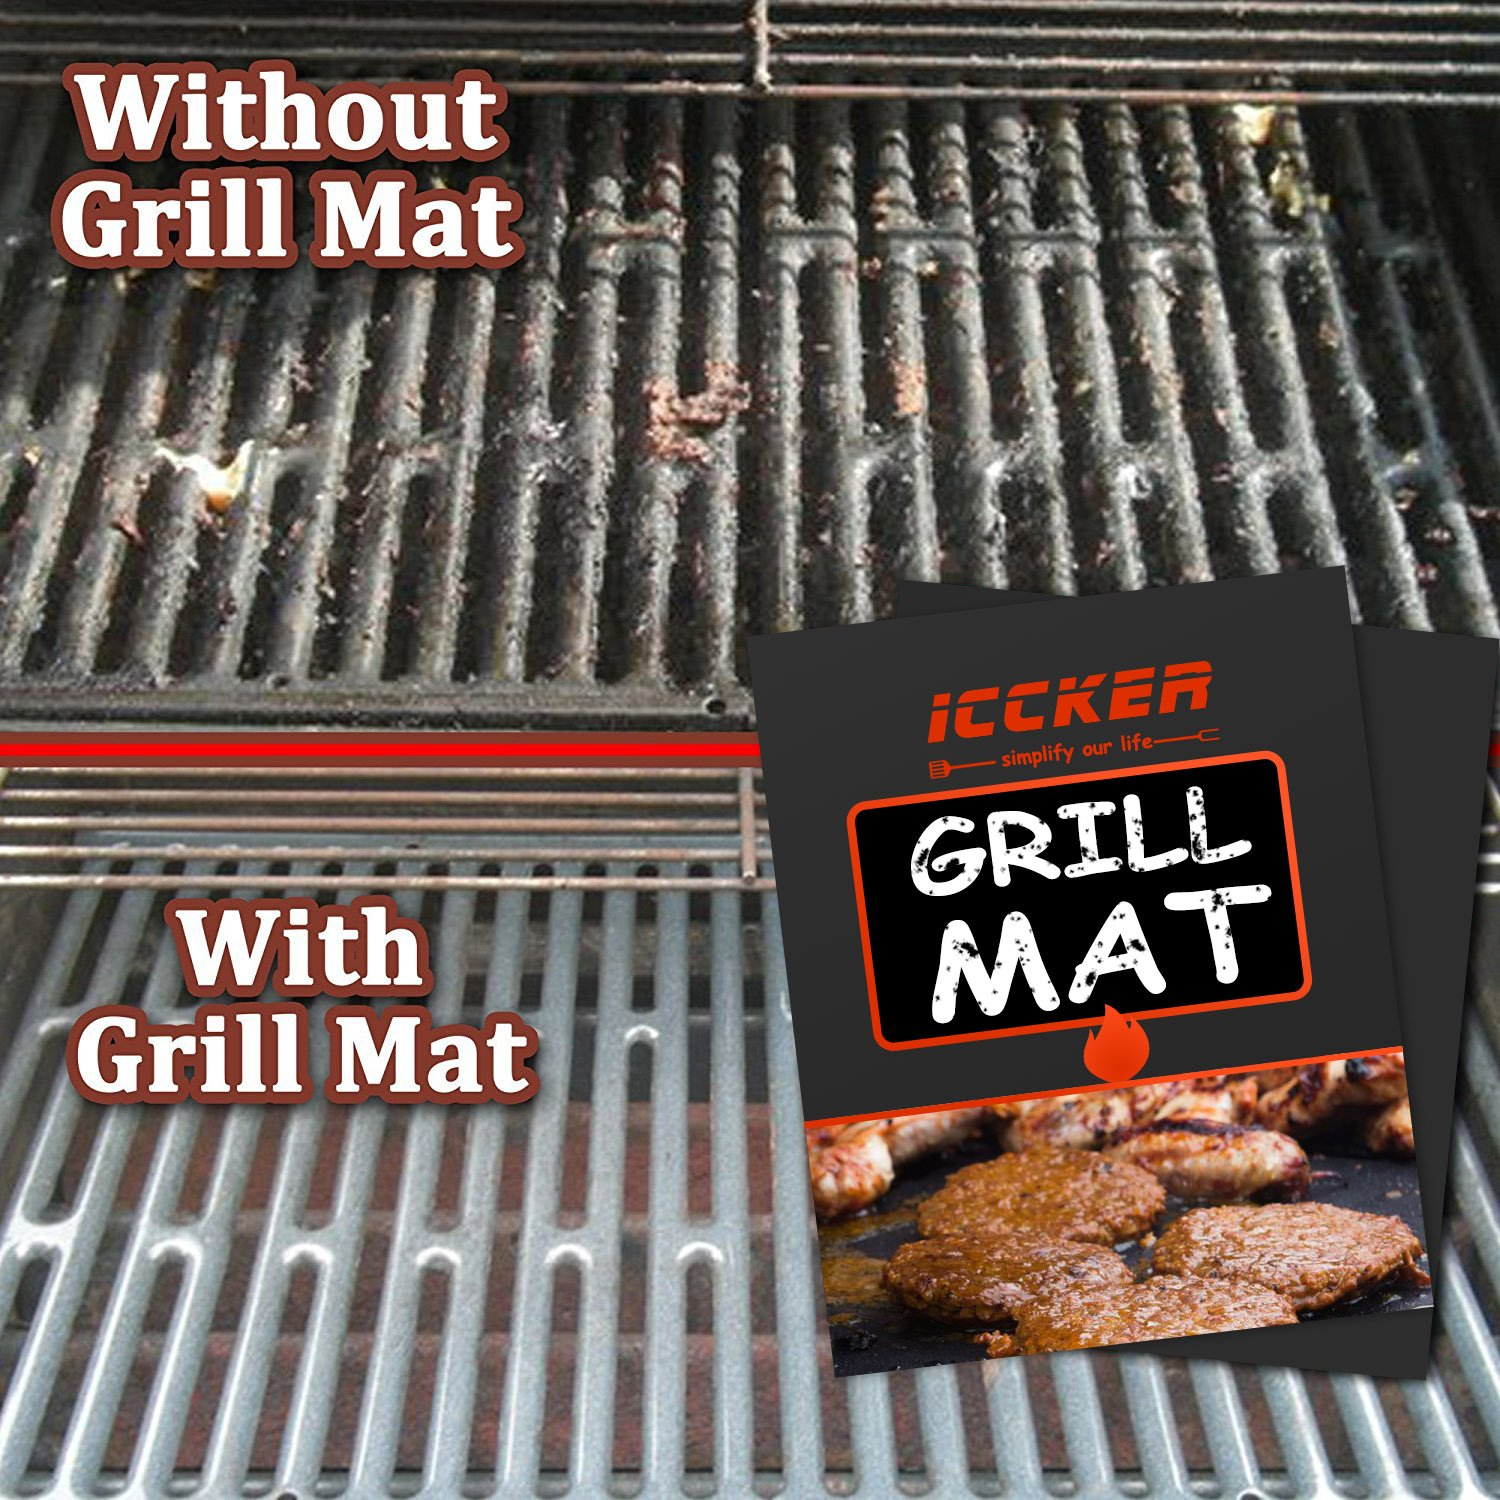 RWM ICCKER Grill Mat - Extra Thick 0.39mm Heavy Duty 600 Degree Non Stick Reusable BBQ Baking Mats 15.75 x 13 in(Set of 3),Dishwasher Safe,FDA Approved